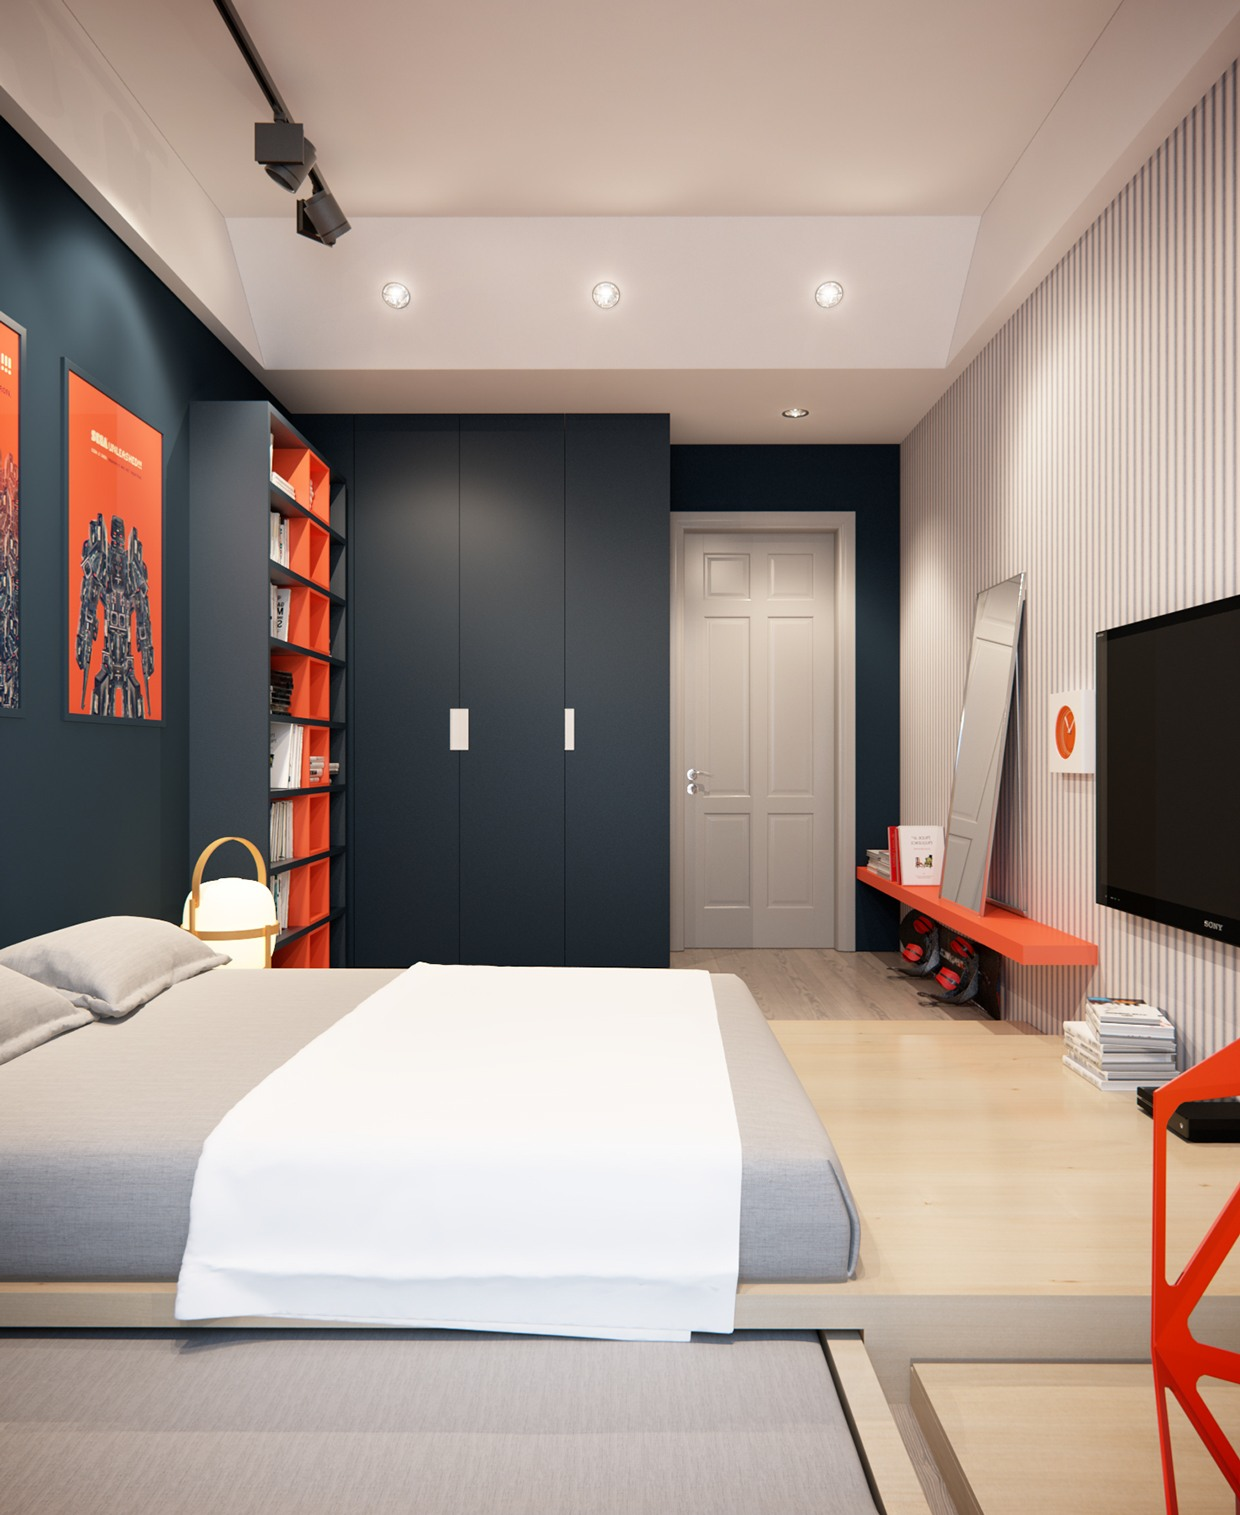 Modern Homes Bedrooms Designs Best Bedrooms Designs Ideas: A Stylish Apartment With Classic Design Features